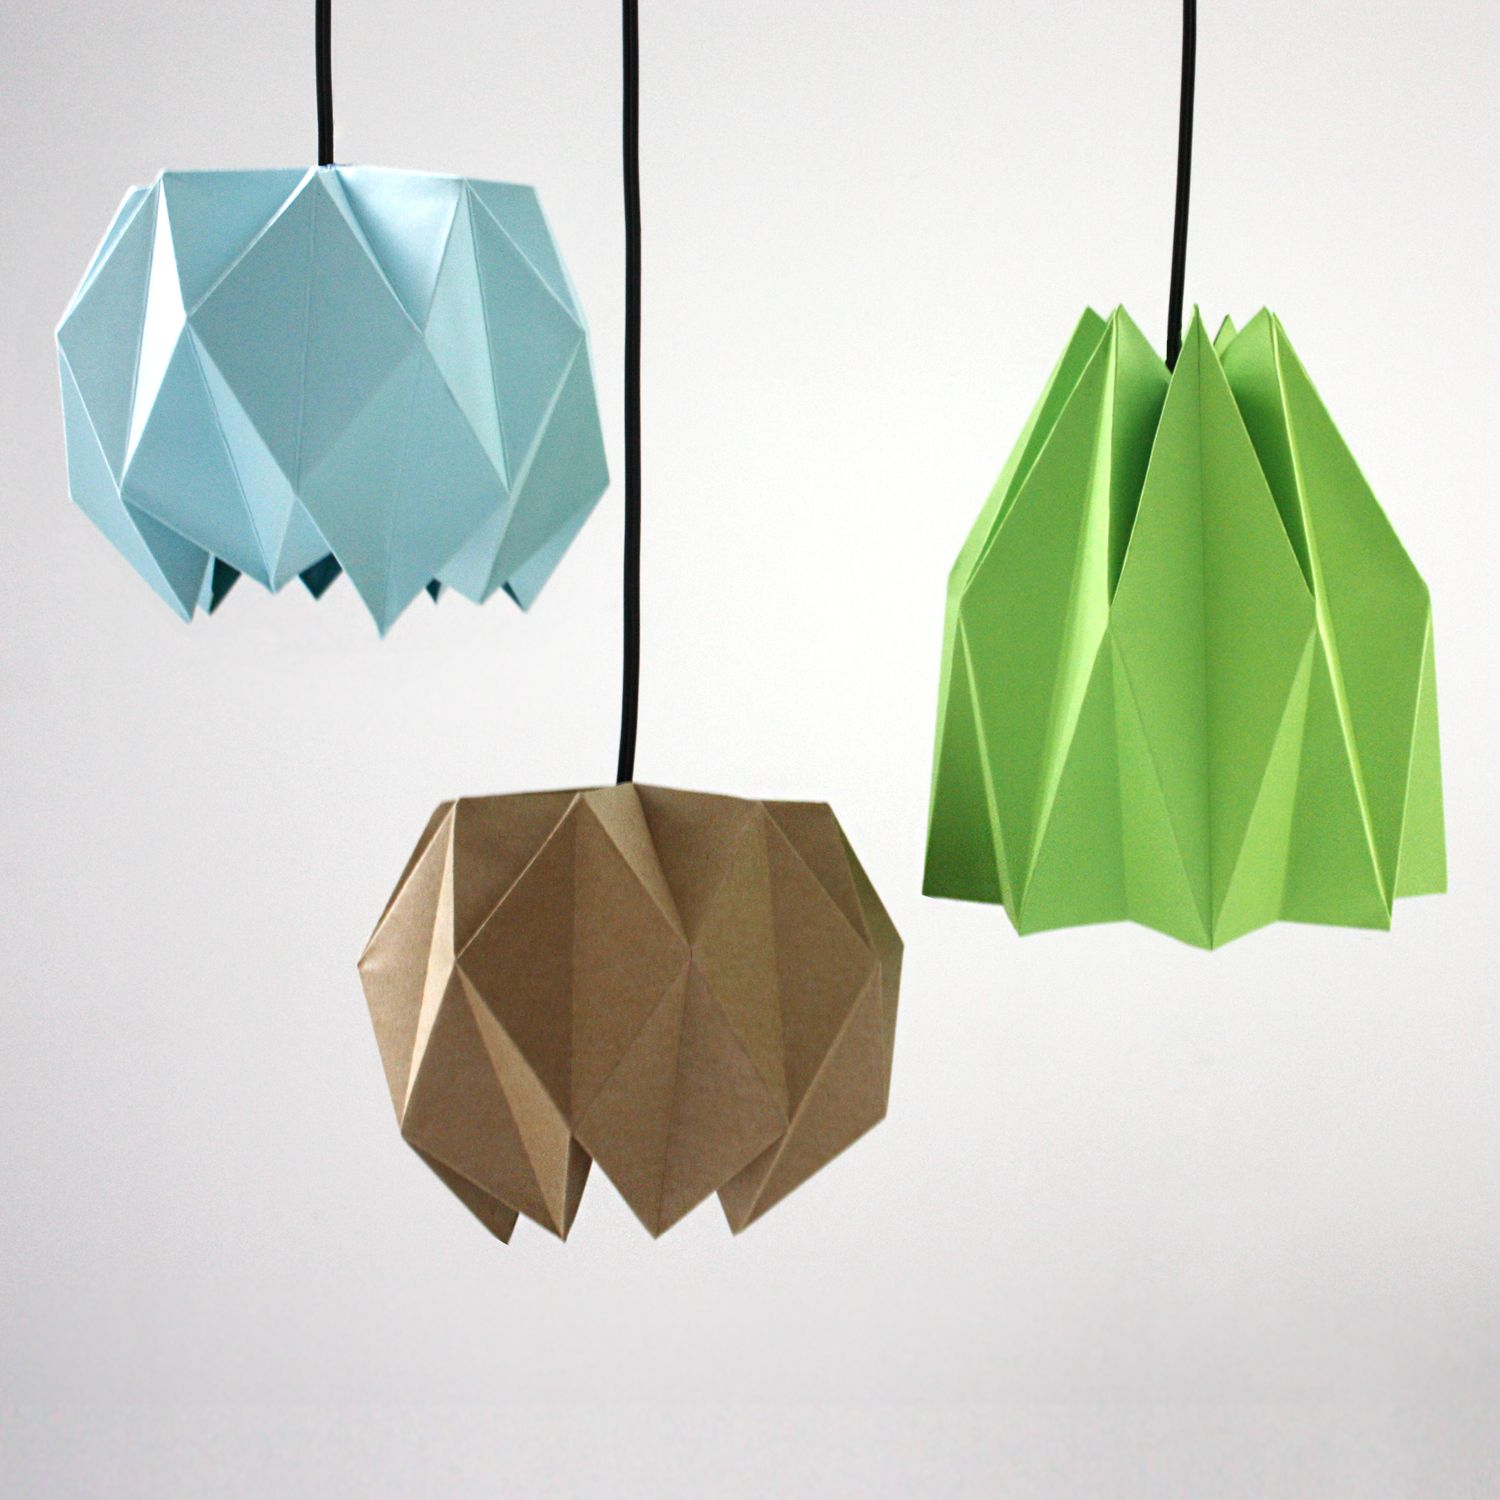 Craft paper lamp shades - Find This Pin And More On Diy Papier Diy Origami Lampshades Paper Crafts